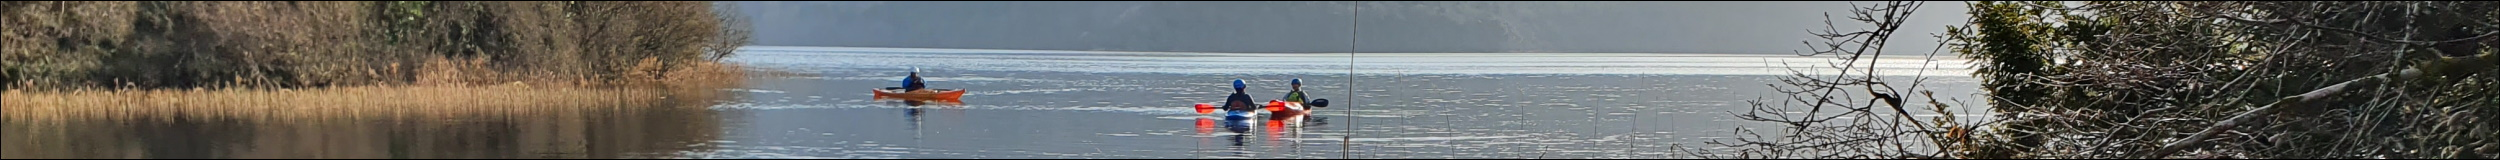 Sligo Kayak Club